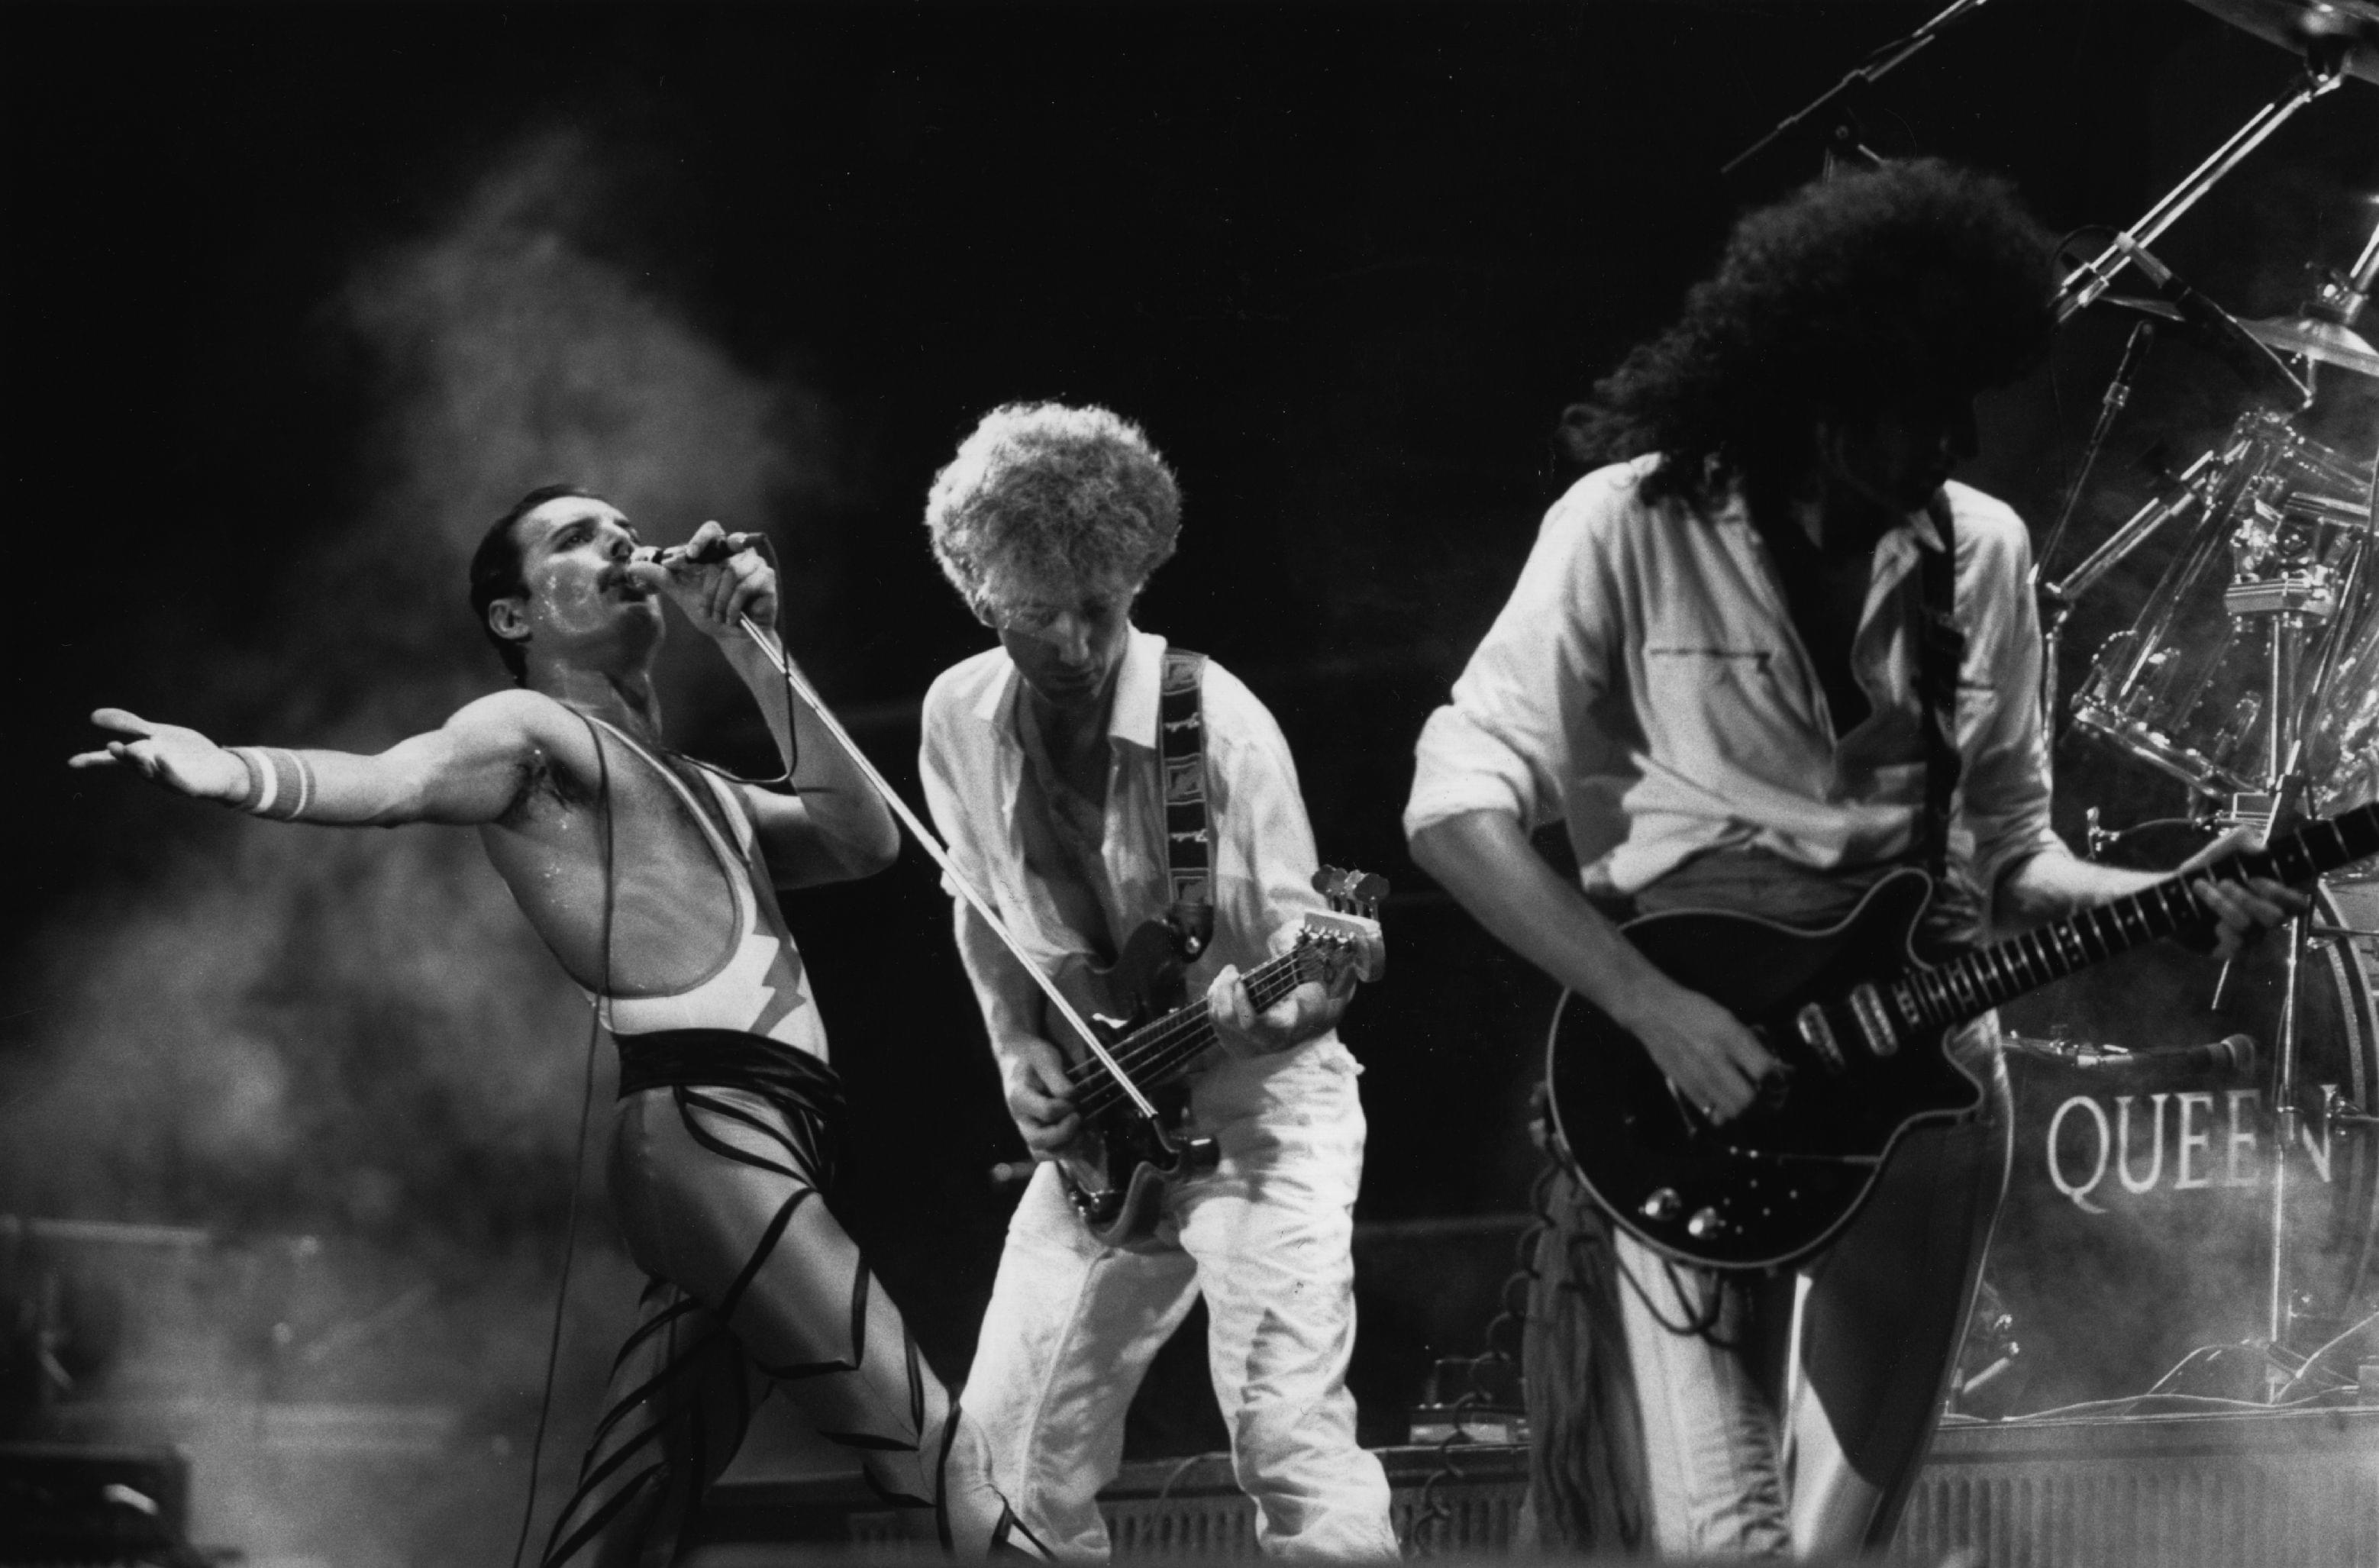 Happy Anniversary to 1985's Live Aid – That Queen performance STILL ROCKS!!